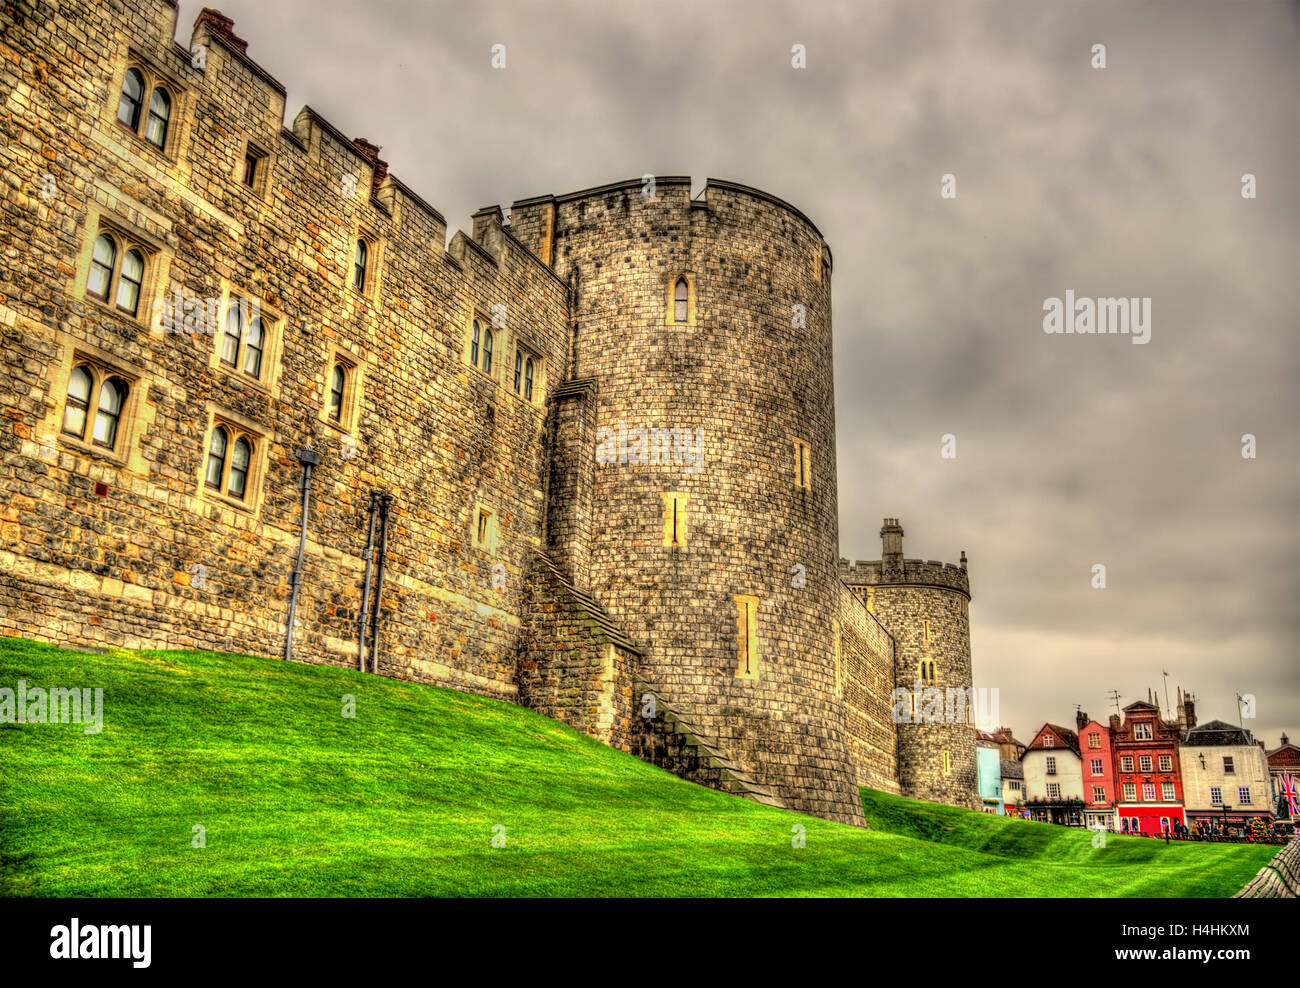 Walls of Windsor Castle near London, England - Stock Image